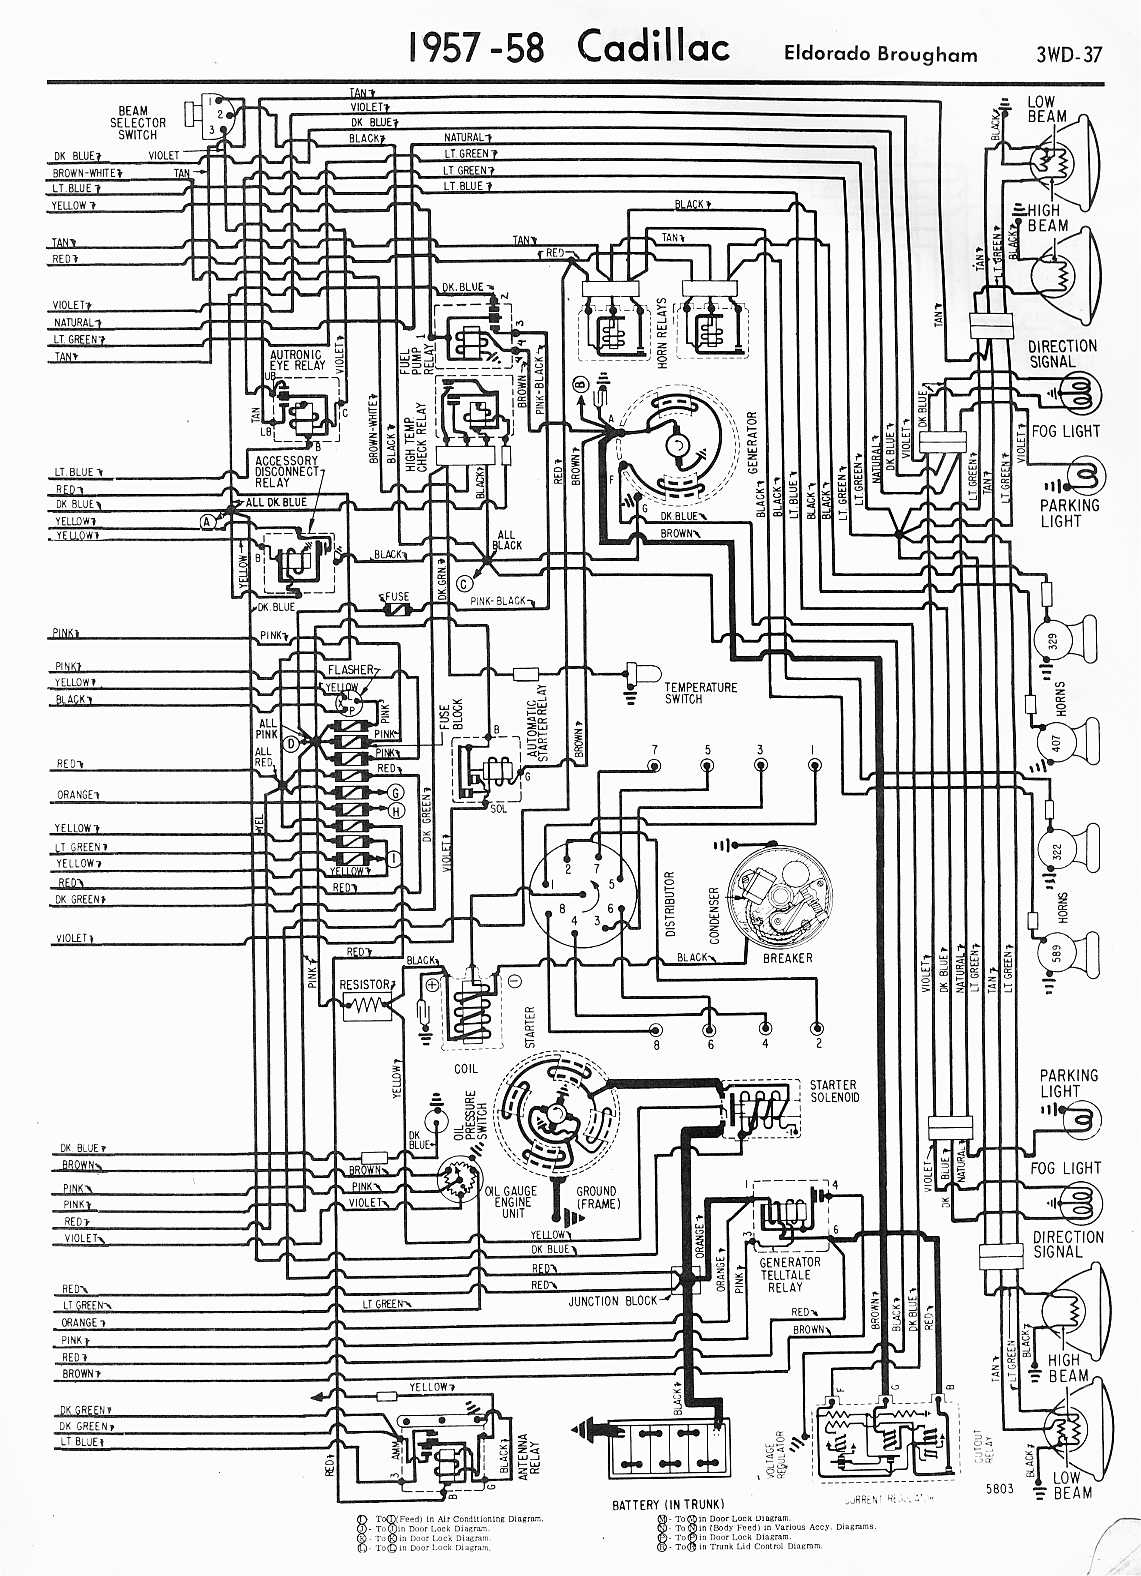 1992 Cadillac Deville Wiring Diagram Diagram Base Website Wiring Diagram -  SIMPLEHEARTDIAGRAM.INADDA.ITDiagram Base Website Full Edition - inadda